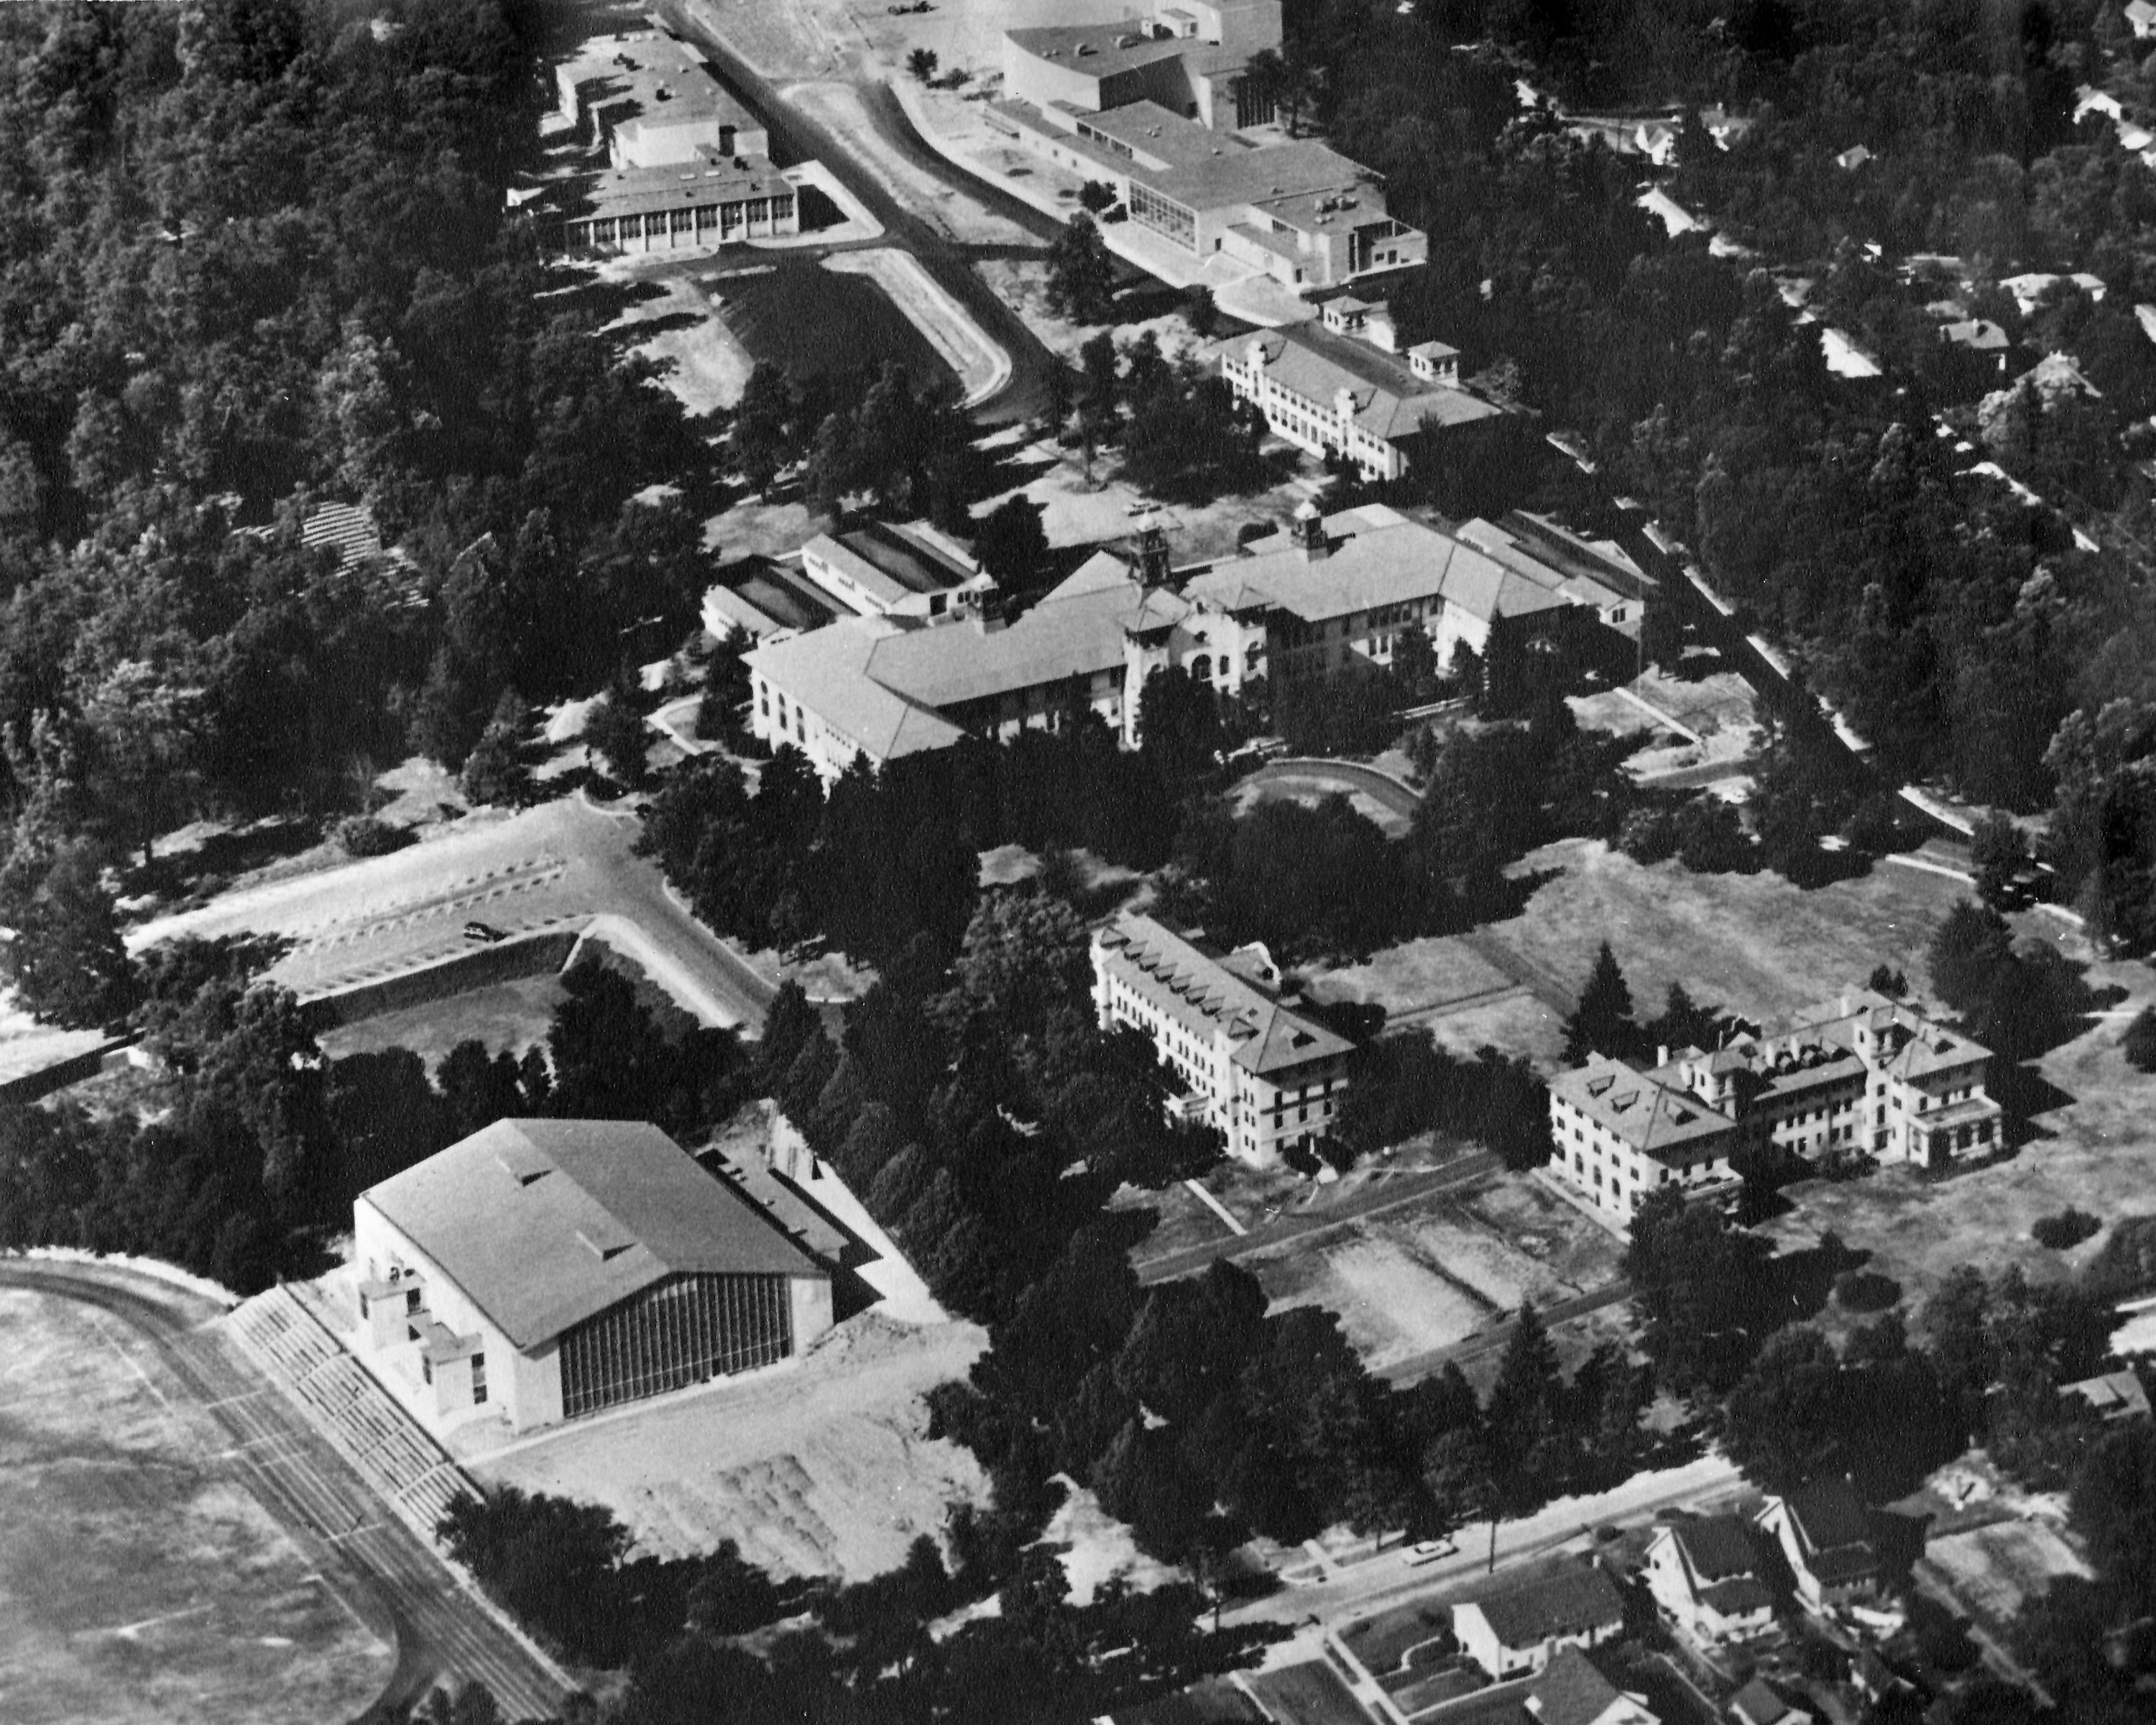 Aerial View of Campus from the 1950's